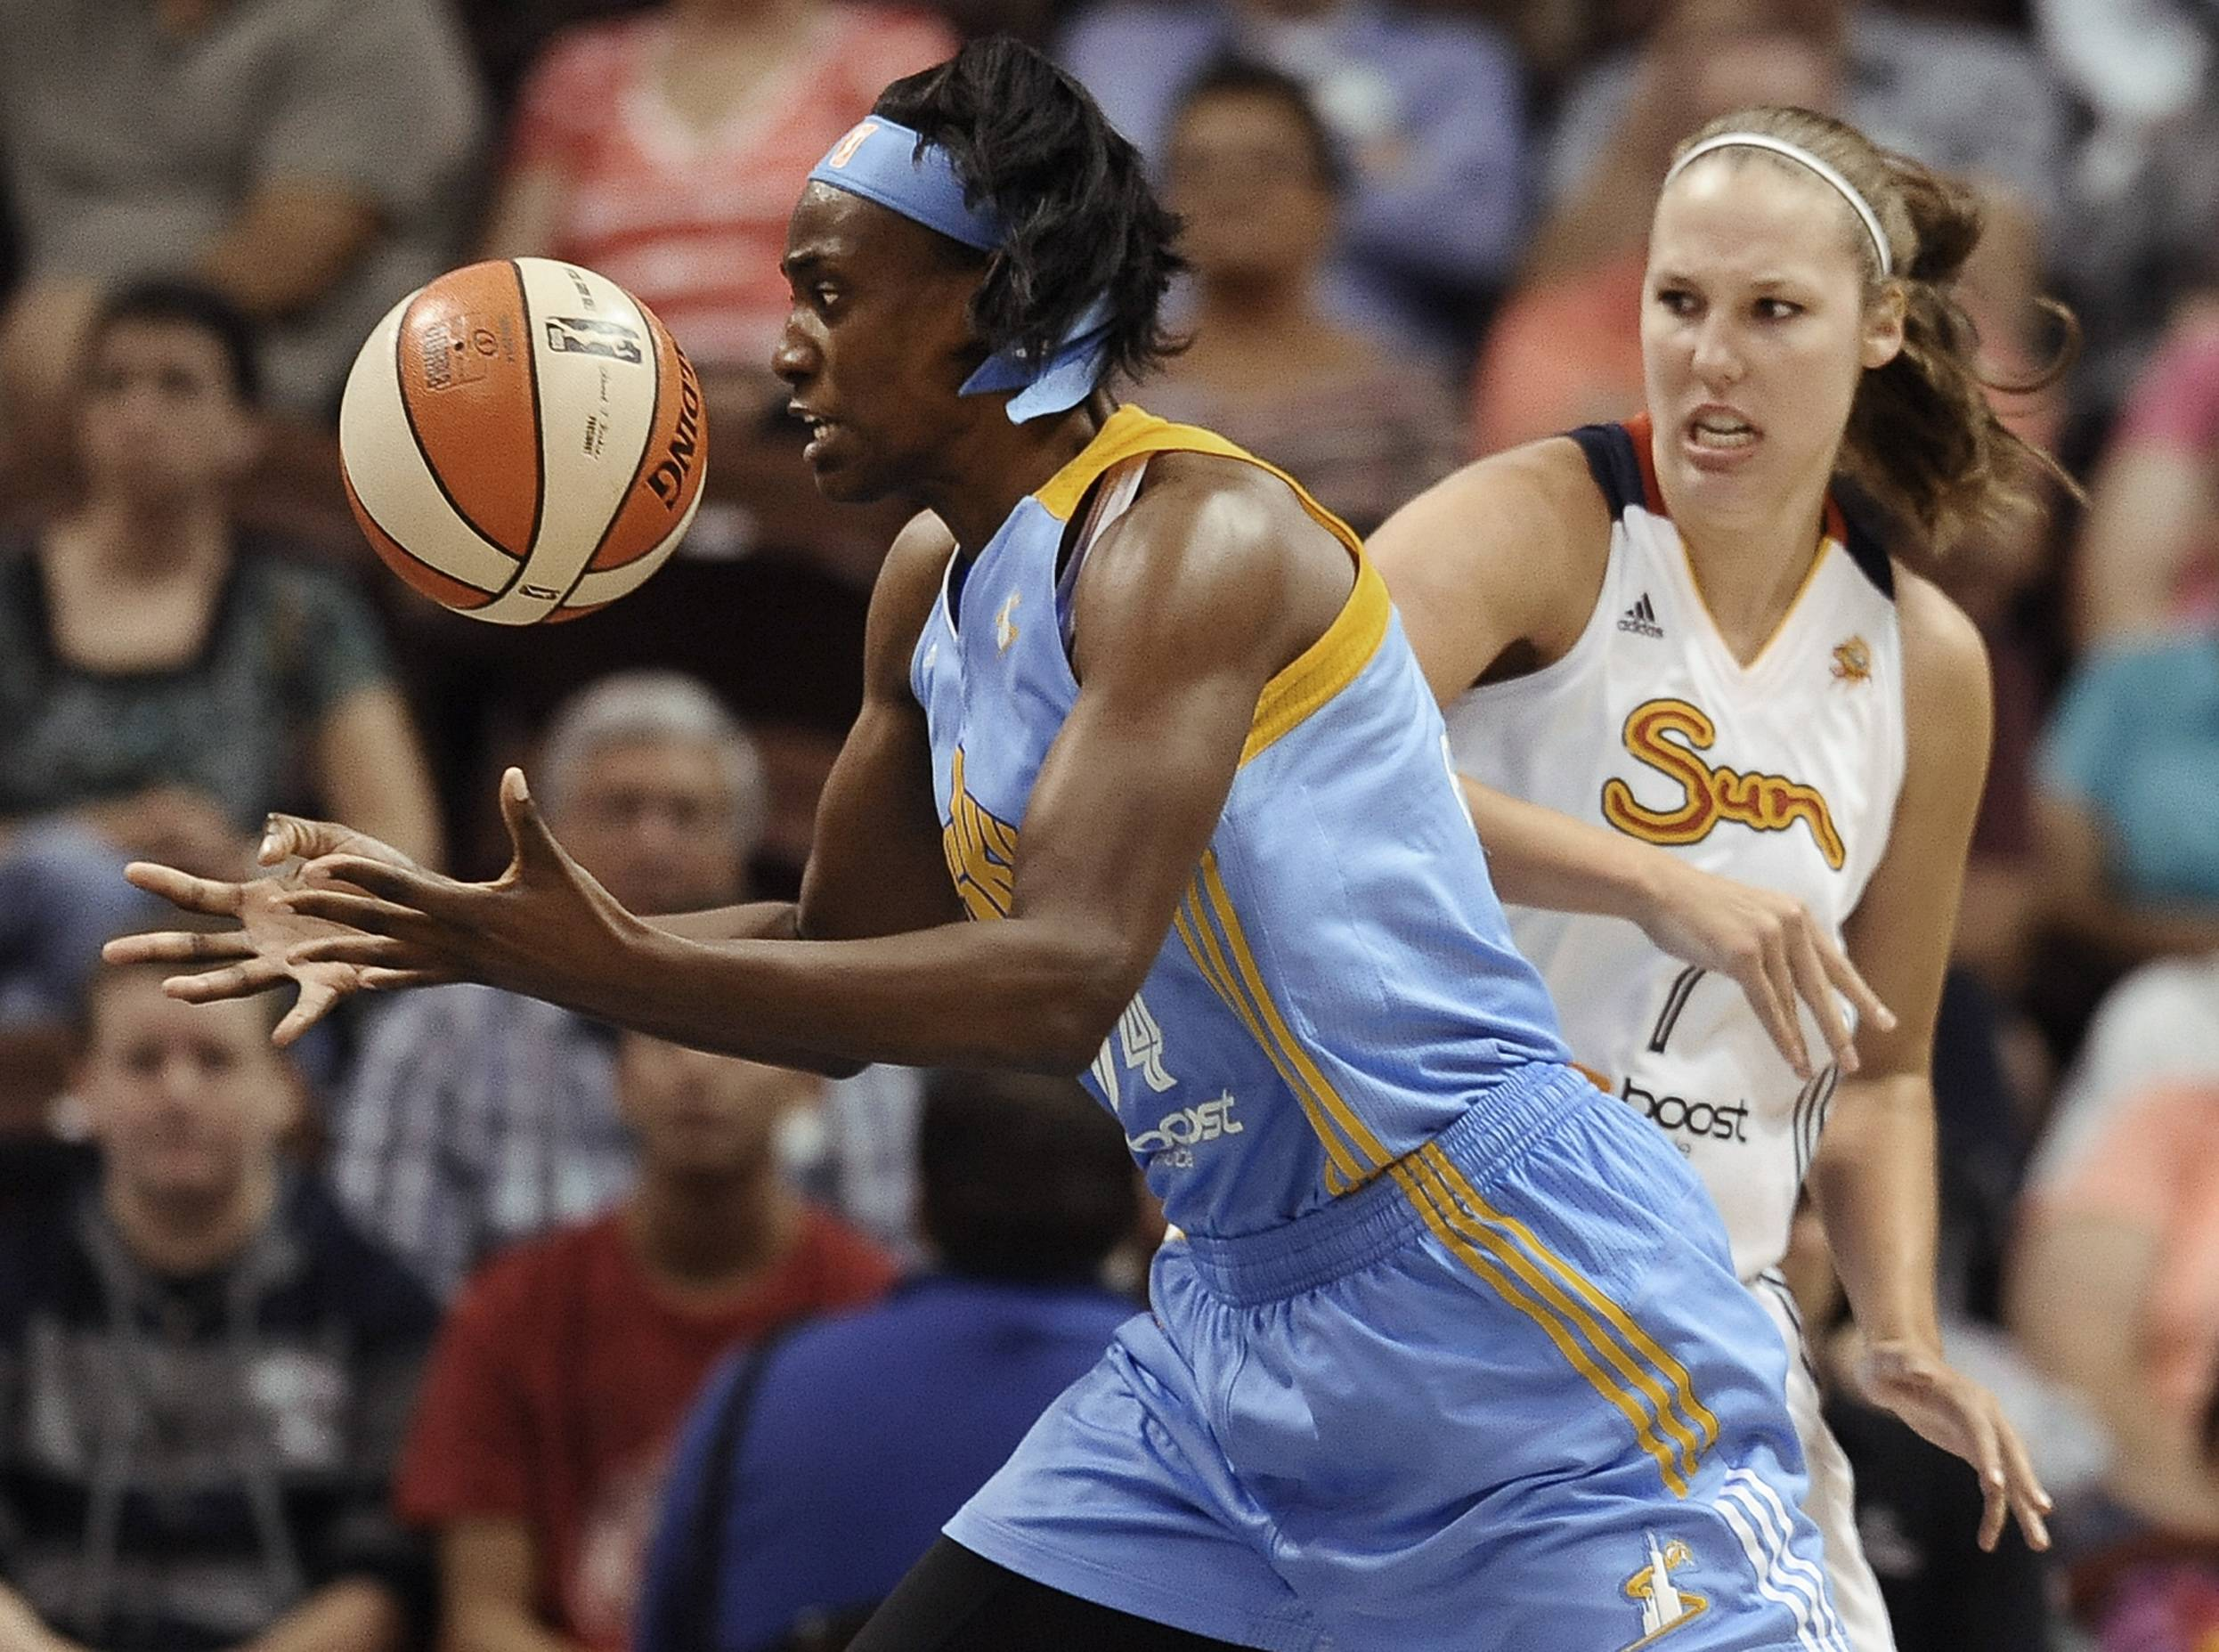 Chicago Sky's Sylvia Fowles, left, reaches for the ball as Connecticut Sun's Kayla Pedersen, right, defends during the first half of a WNBA basketball game, Tuesday, Aug. 5, 2014, in Uncasville, Conn. (AP Photo/Jessica Hill)